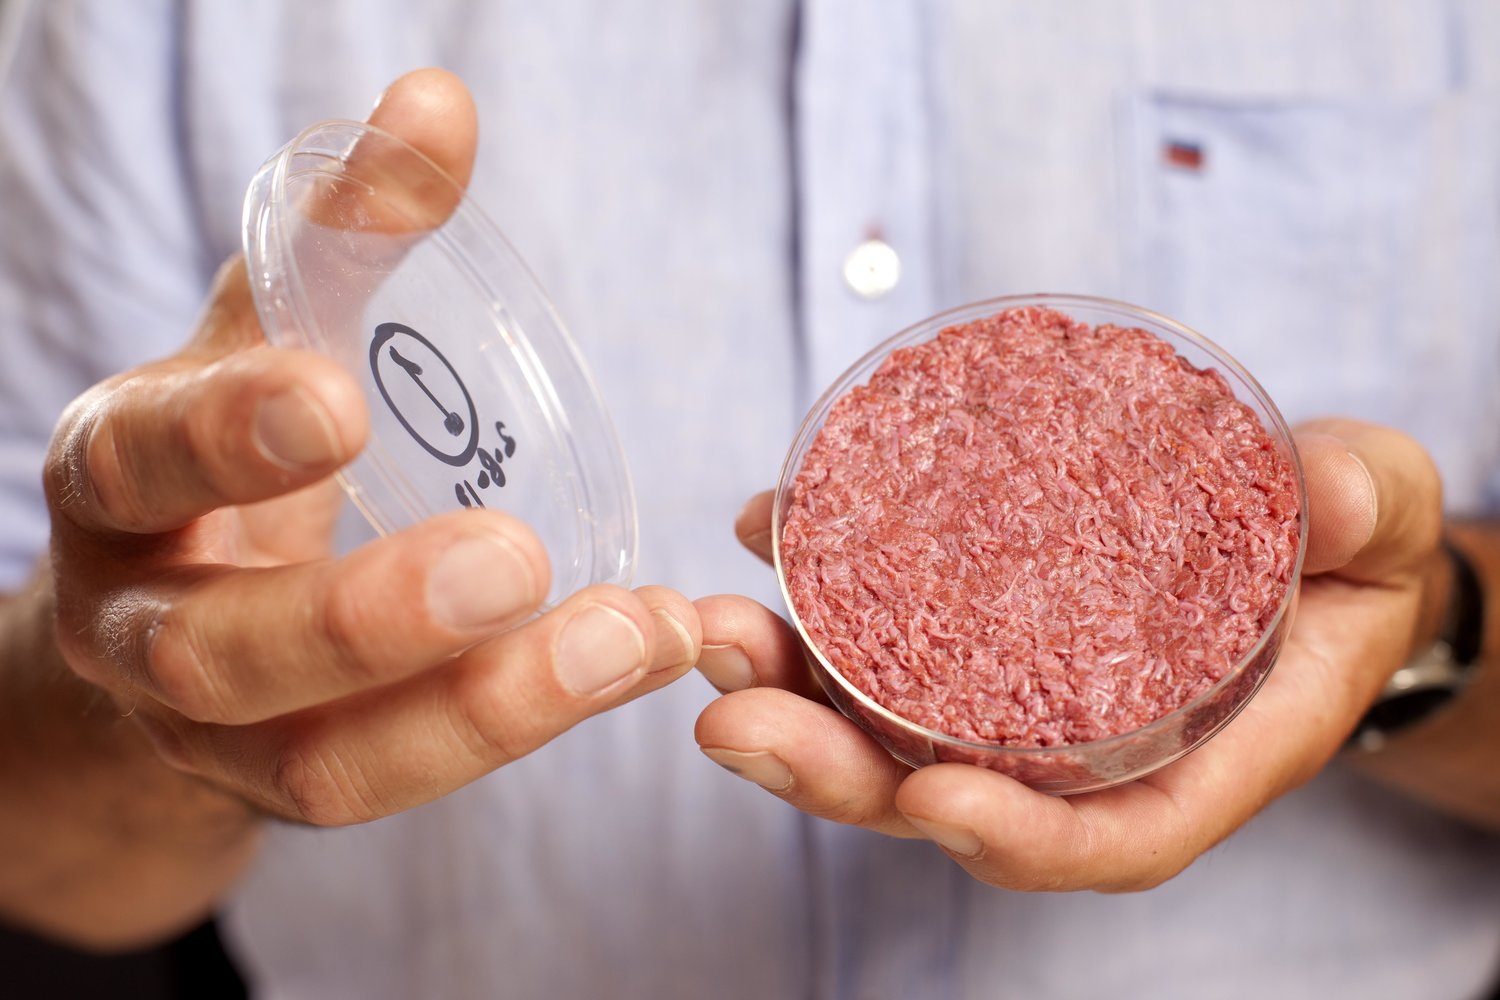 A burger made from Cultured Beef, which has been developed by Professor Mark Post of Maastricht University in the Netherlands.<br /> PRESS ASSOCIATION Photo. Issue date: Monday August 5, 2013.<br /> Cultured Beef could help solve the coming food crisis and combat climate change. Commercial production of Cultured Beef could begin within ten to 20 years.